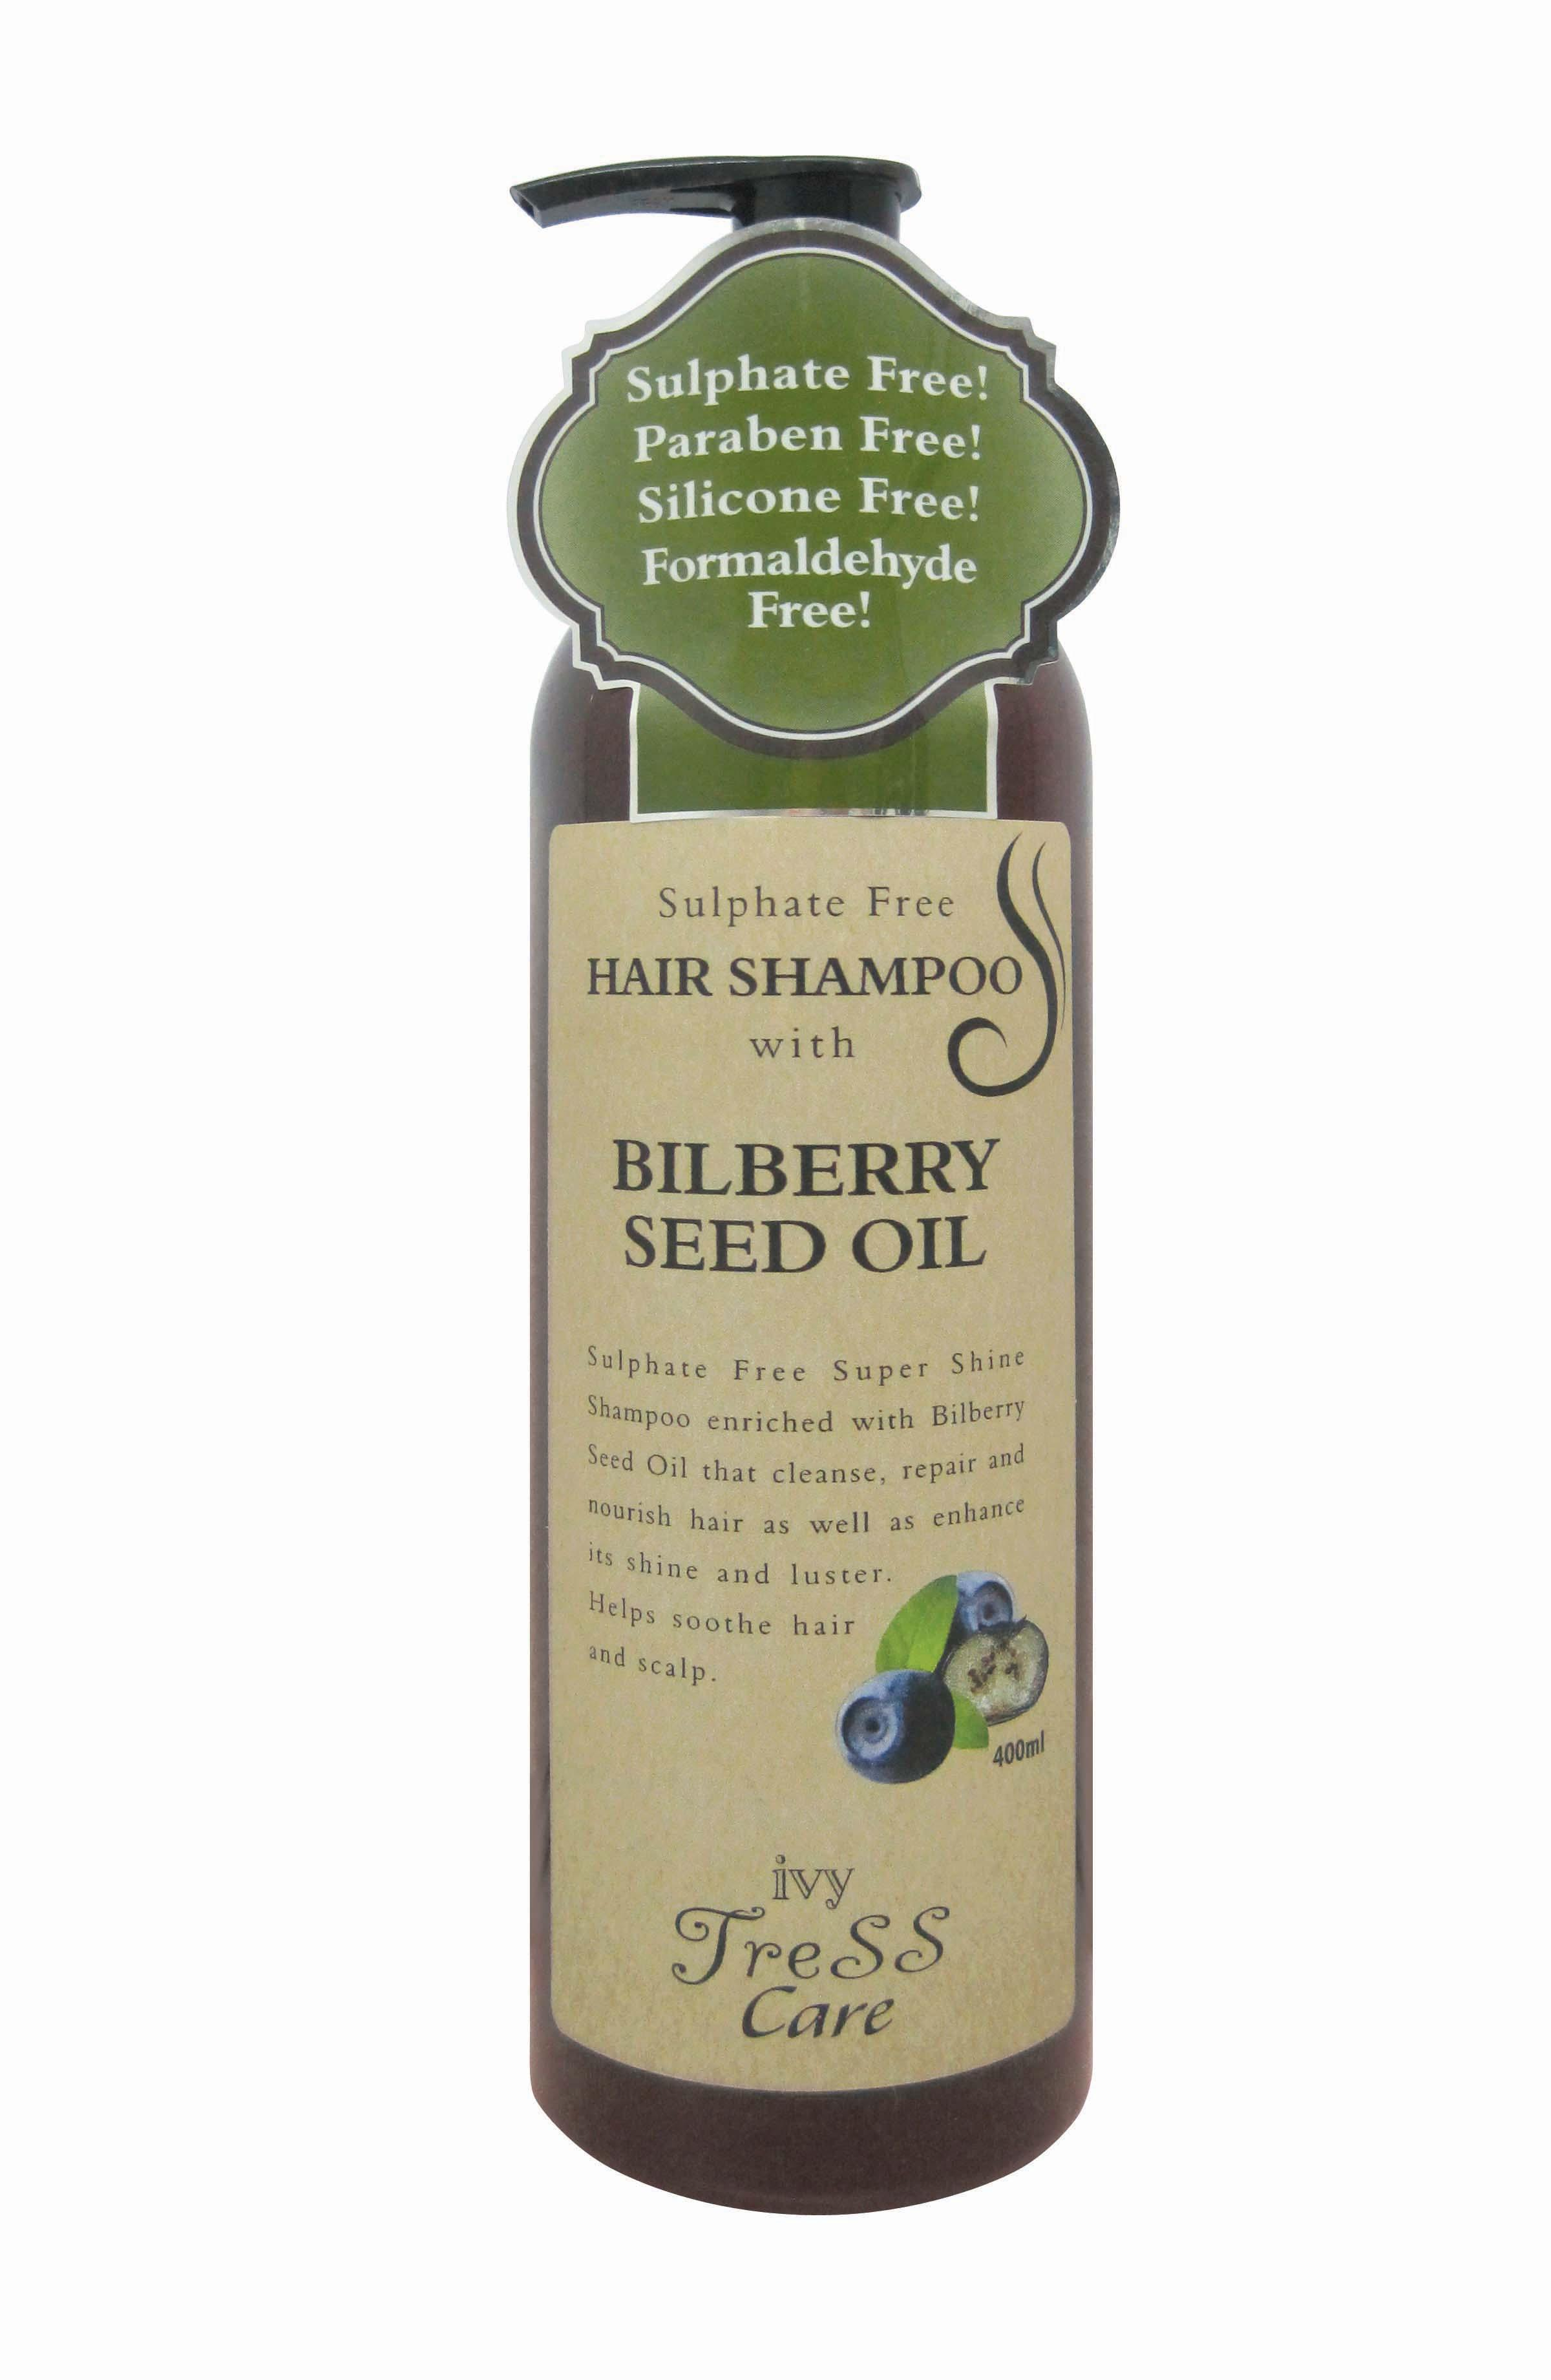 Ivy Tress Care Hair Shampoo with Bilberry seed oil (400ml)